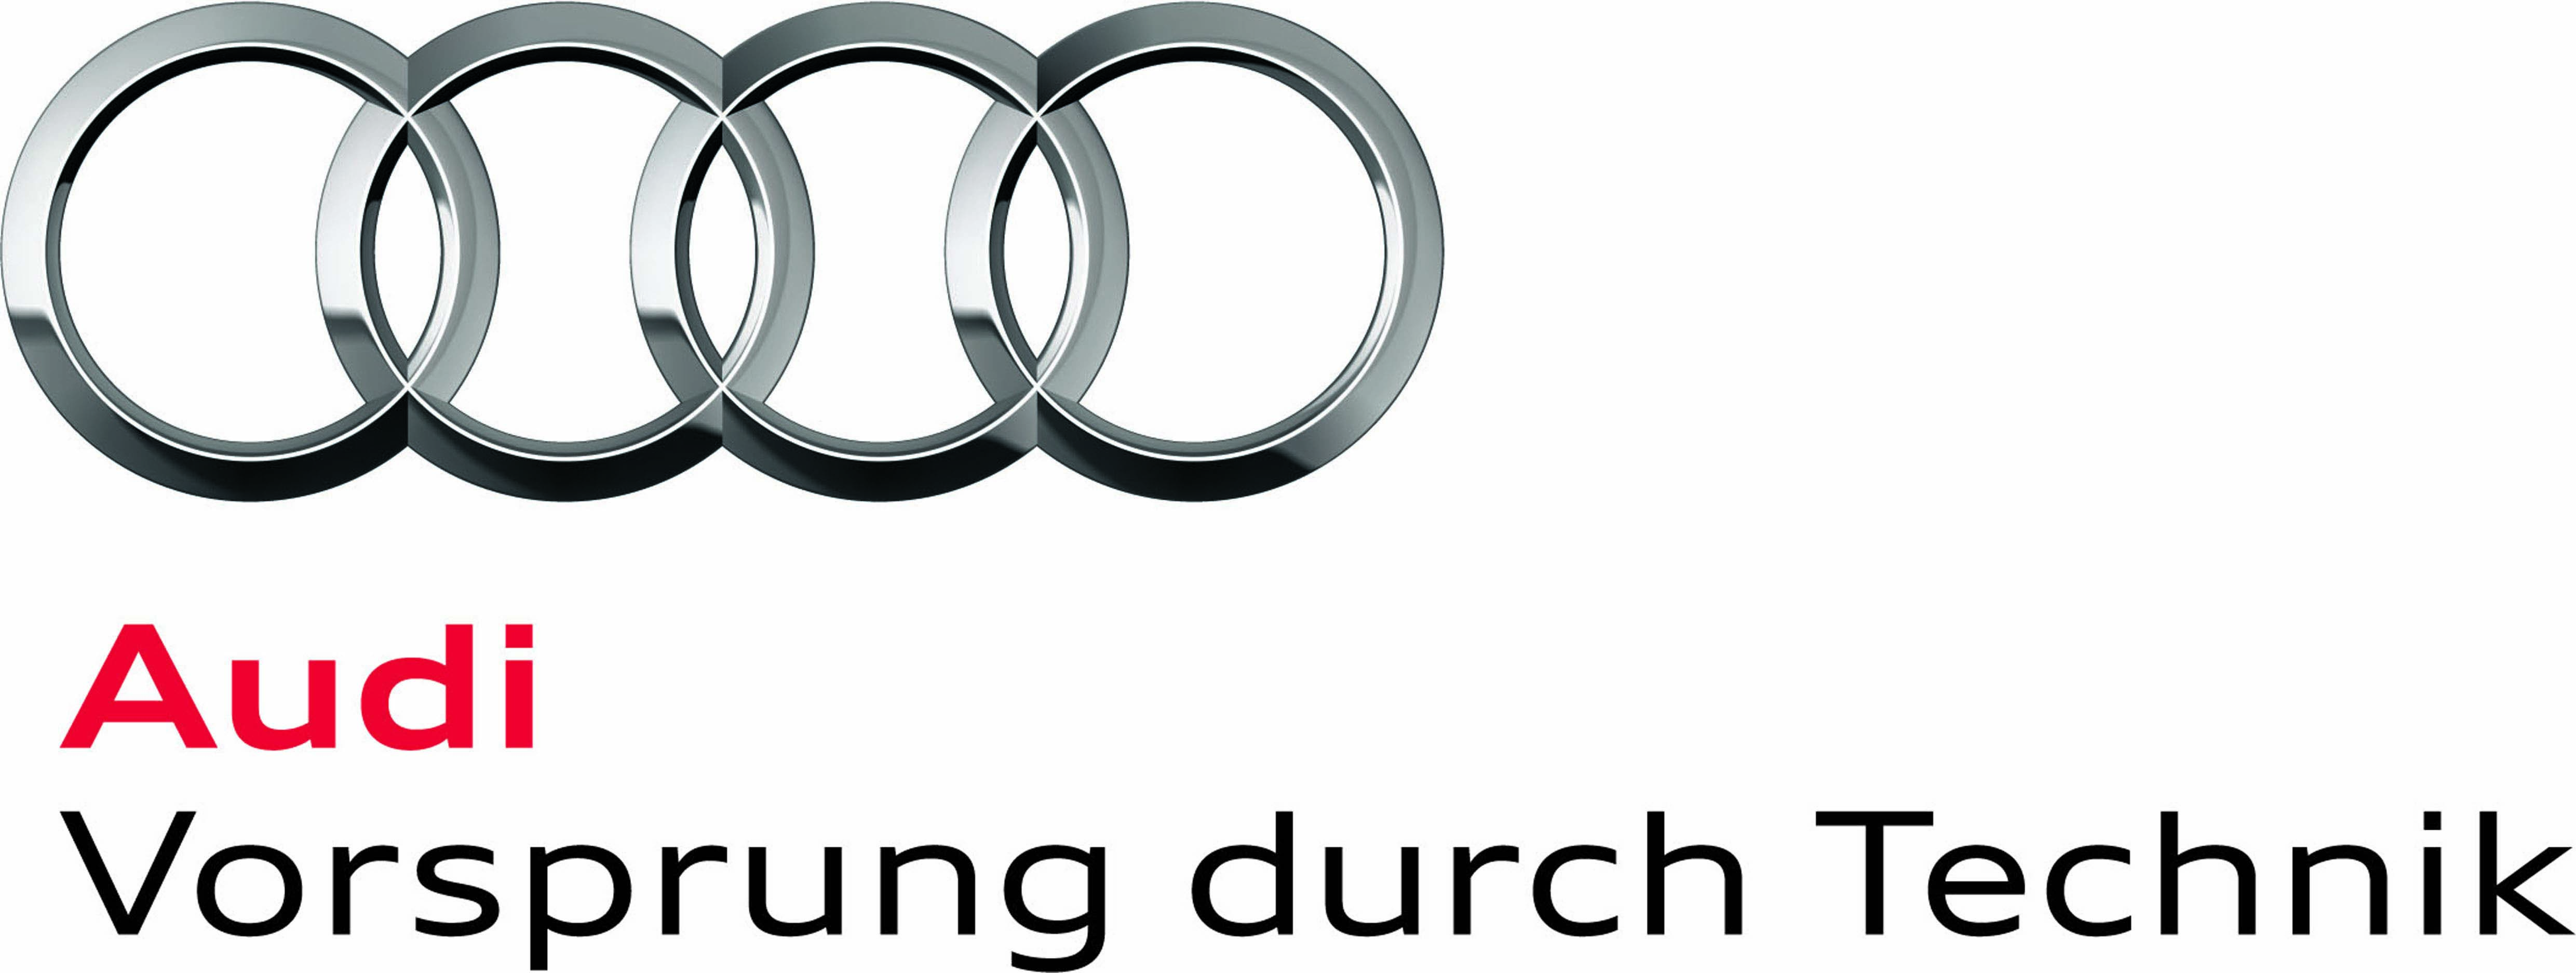 European Commission: the LED lights of your Audi A6 shall save our planet –  The European Sting - Critical News & Insights on European Politics,  Economy, Foreign Affairs, Business & Technology - europeansting.com